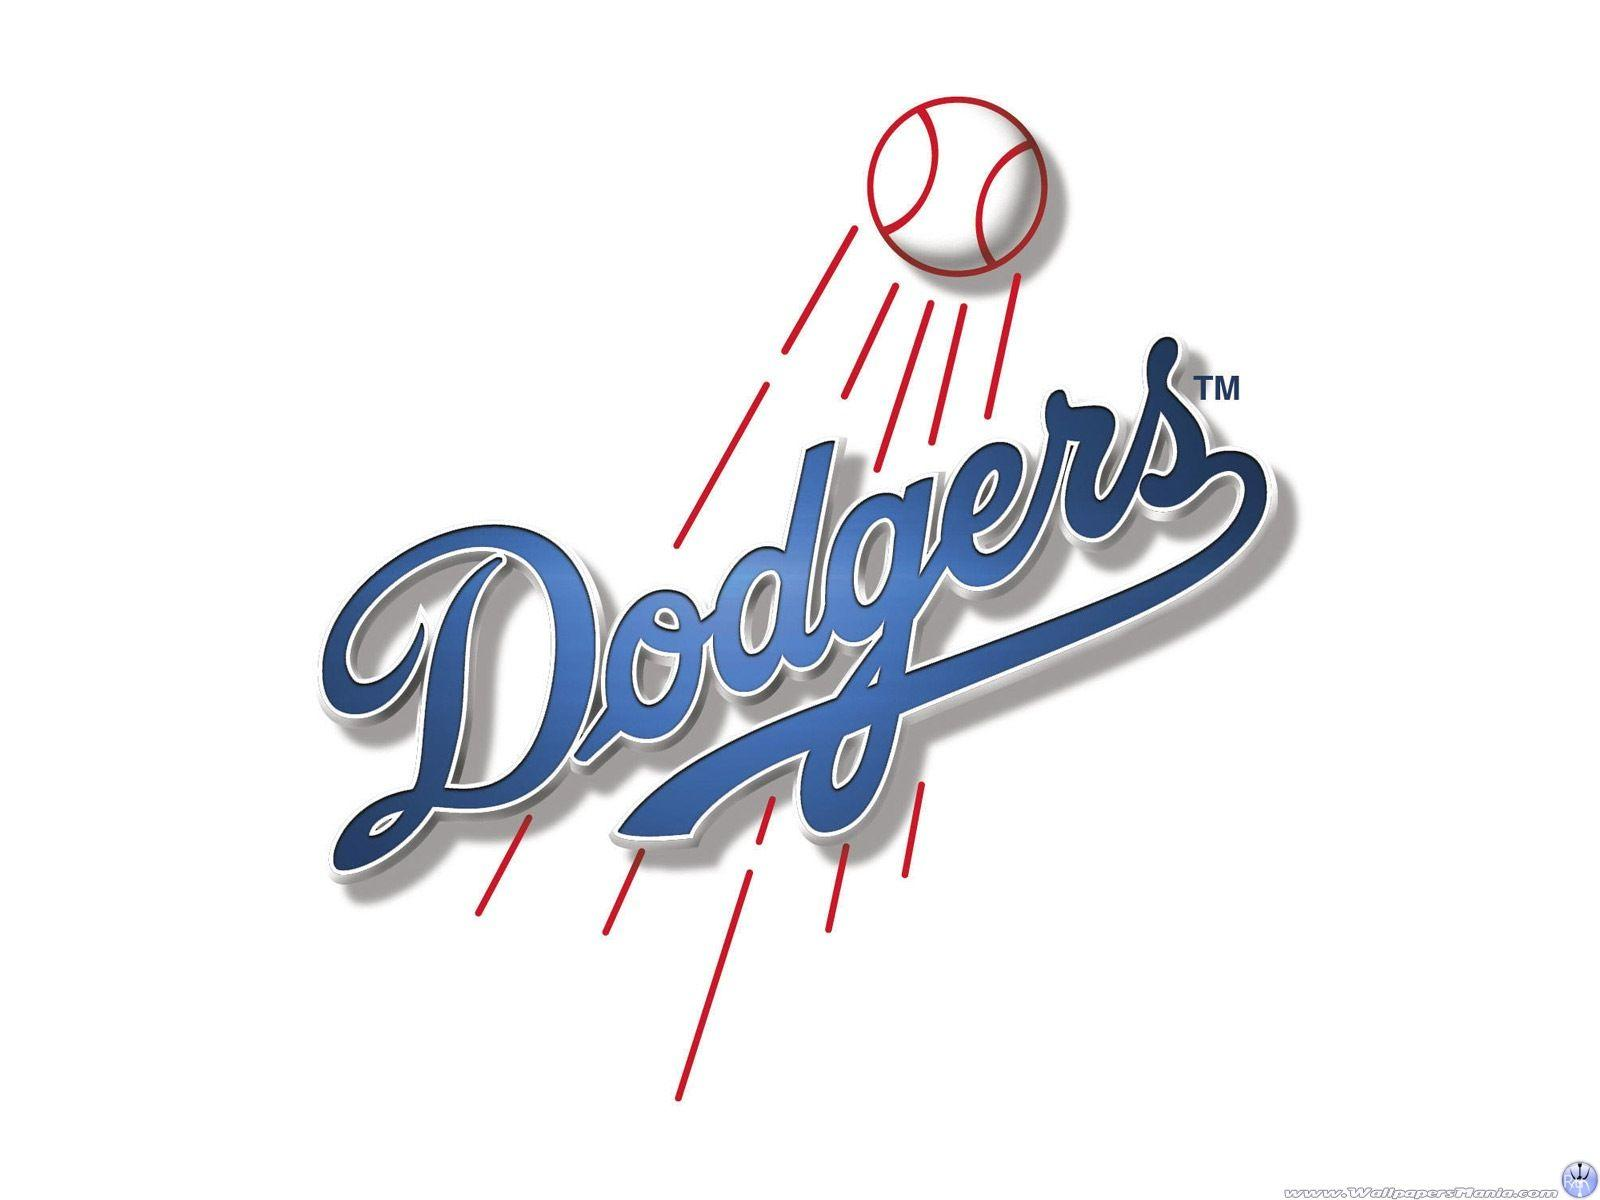 Free Los Angeles Dodgers Wallpapers Wallpapers 1600x1200PX